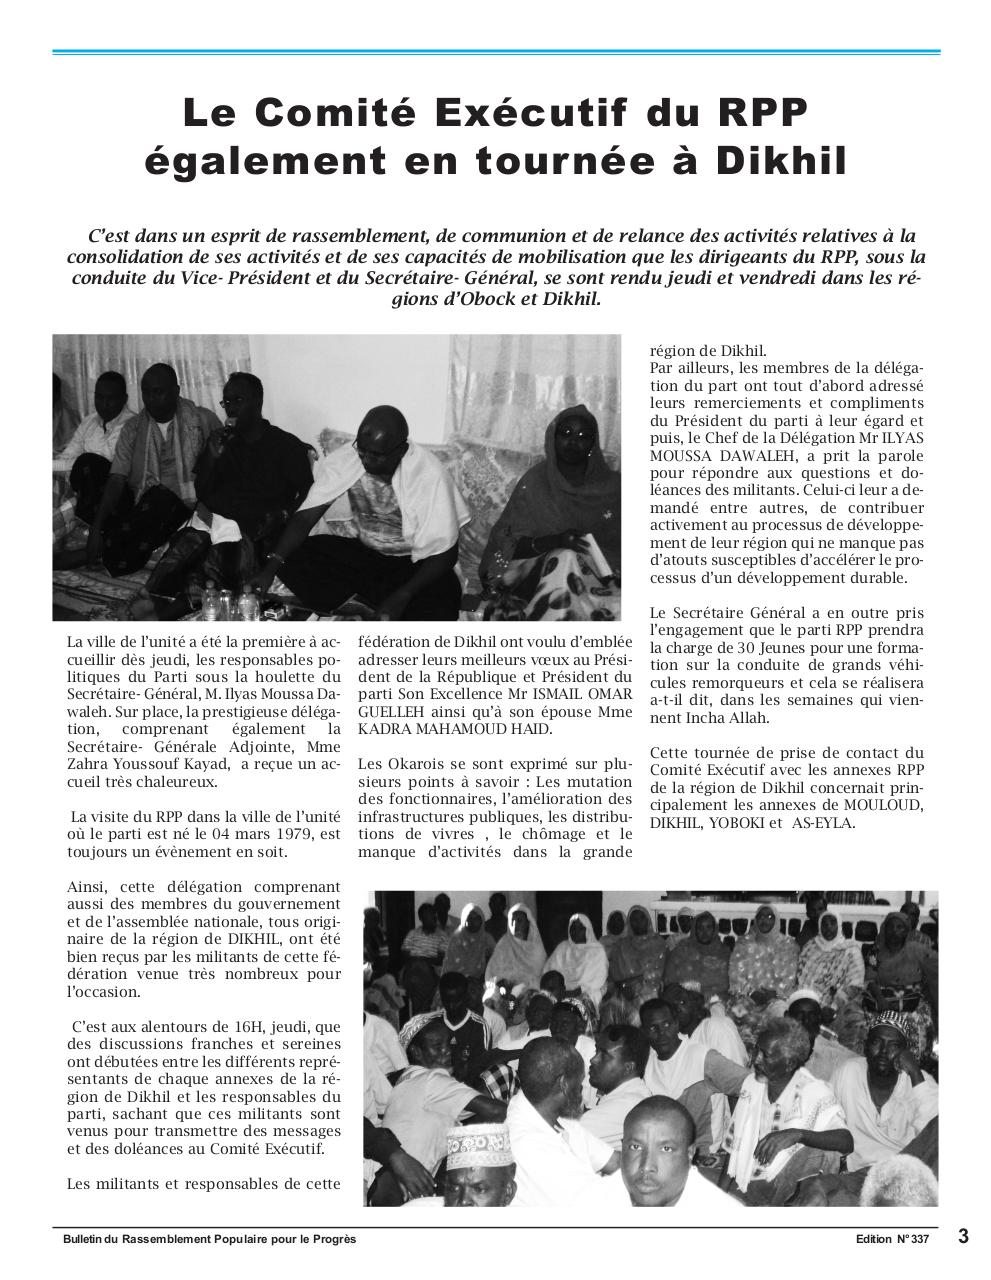 Journal Le progres Edition N°337 du 3 Novembre 2013.pdf - page 3/8